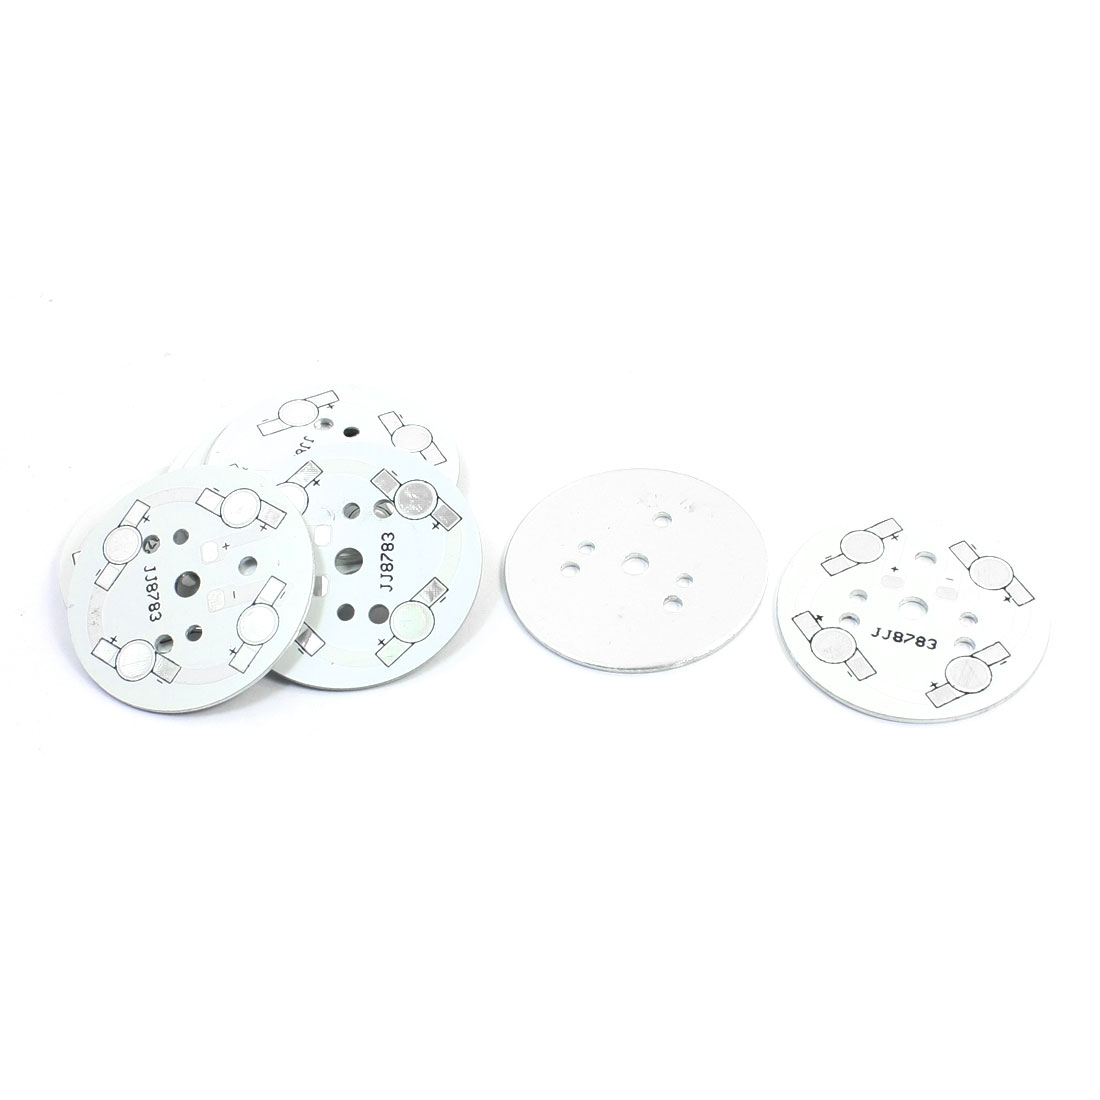 10pcs 49mm Dia Round Aluminum PCB Circuit Board for 4 x 1W/3W/5W LED